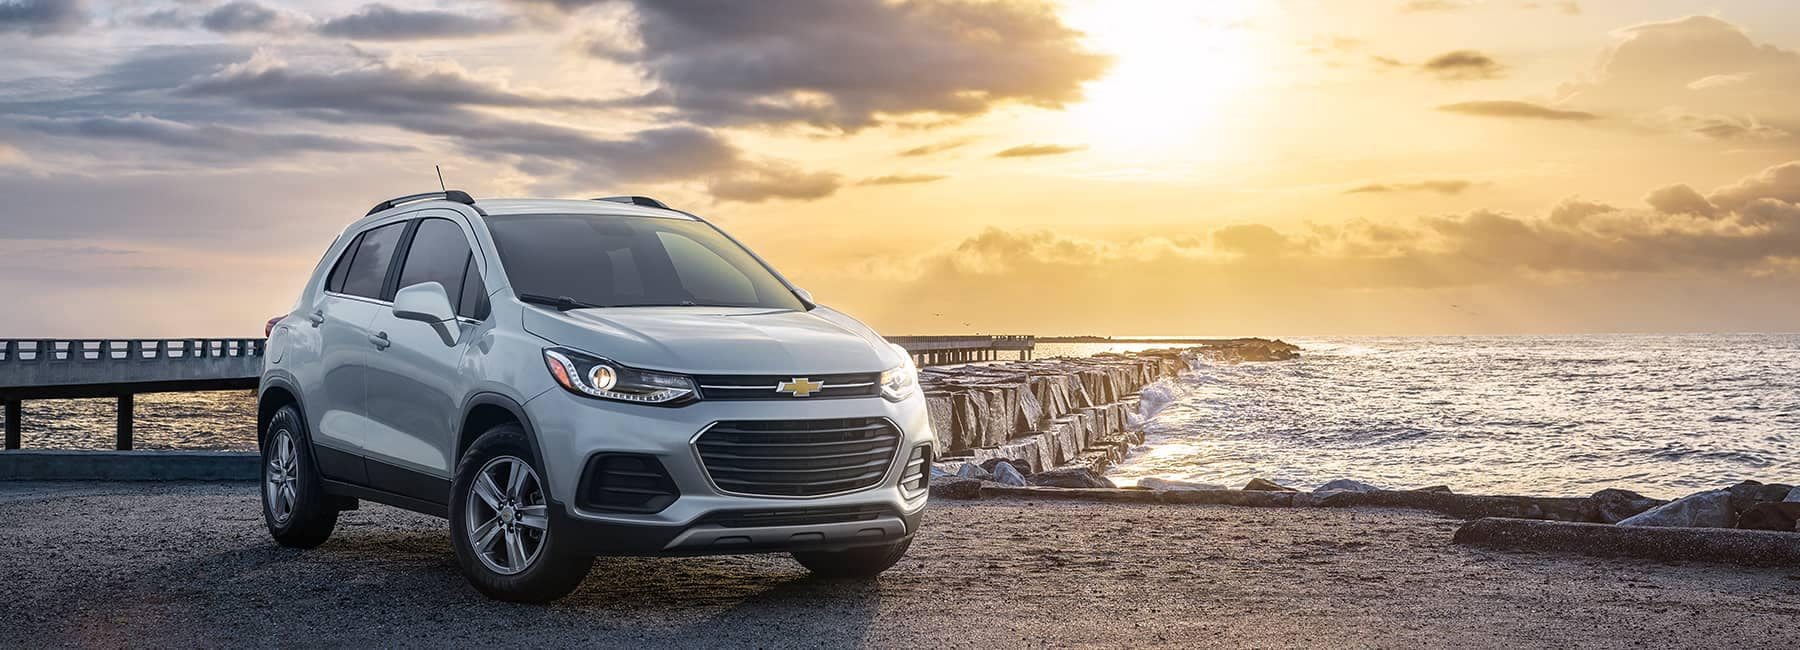 White 2021 Chevrolet Trax parked in front of an ocean pier